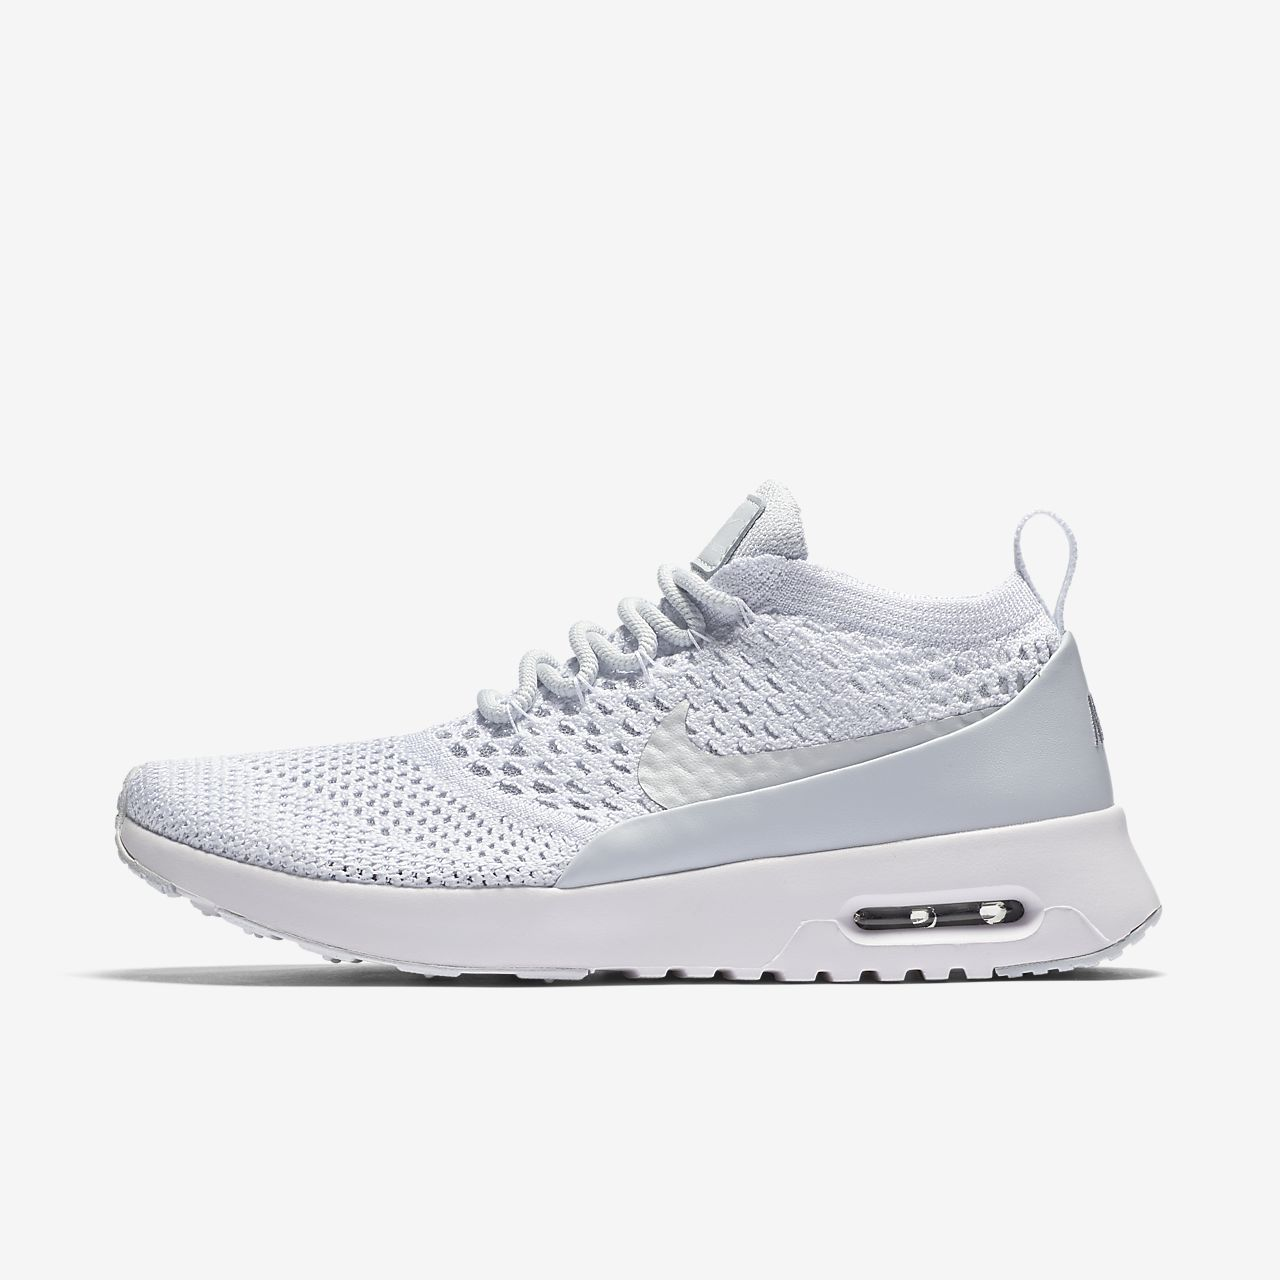 nike air max 1 ultra flyknit women's running shoes nz